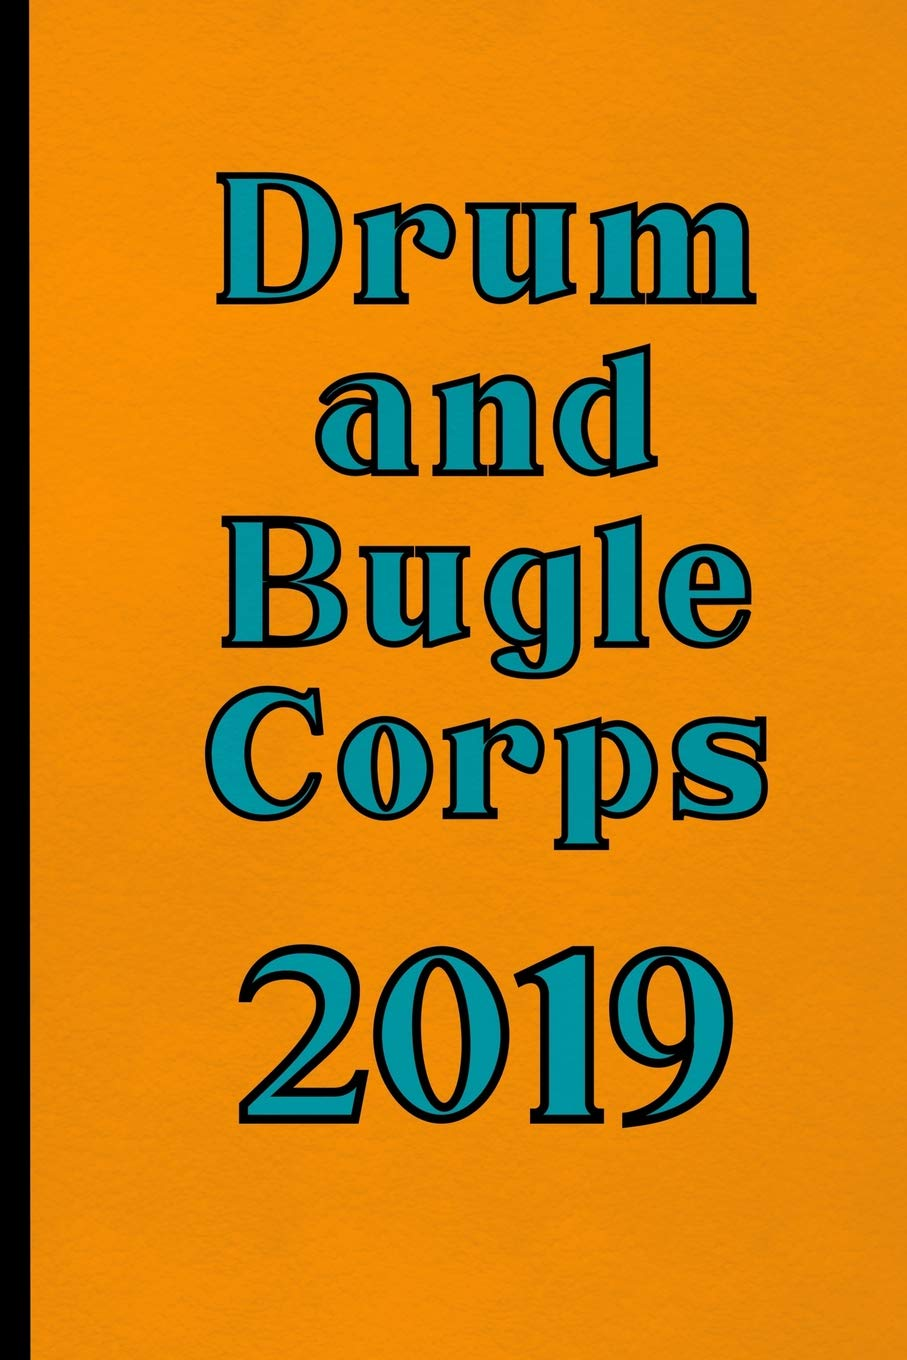 Drum and Bugle Corps 2019: Marching Band Composition and Musical